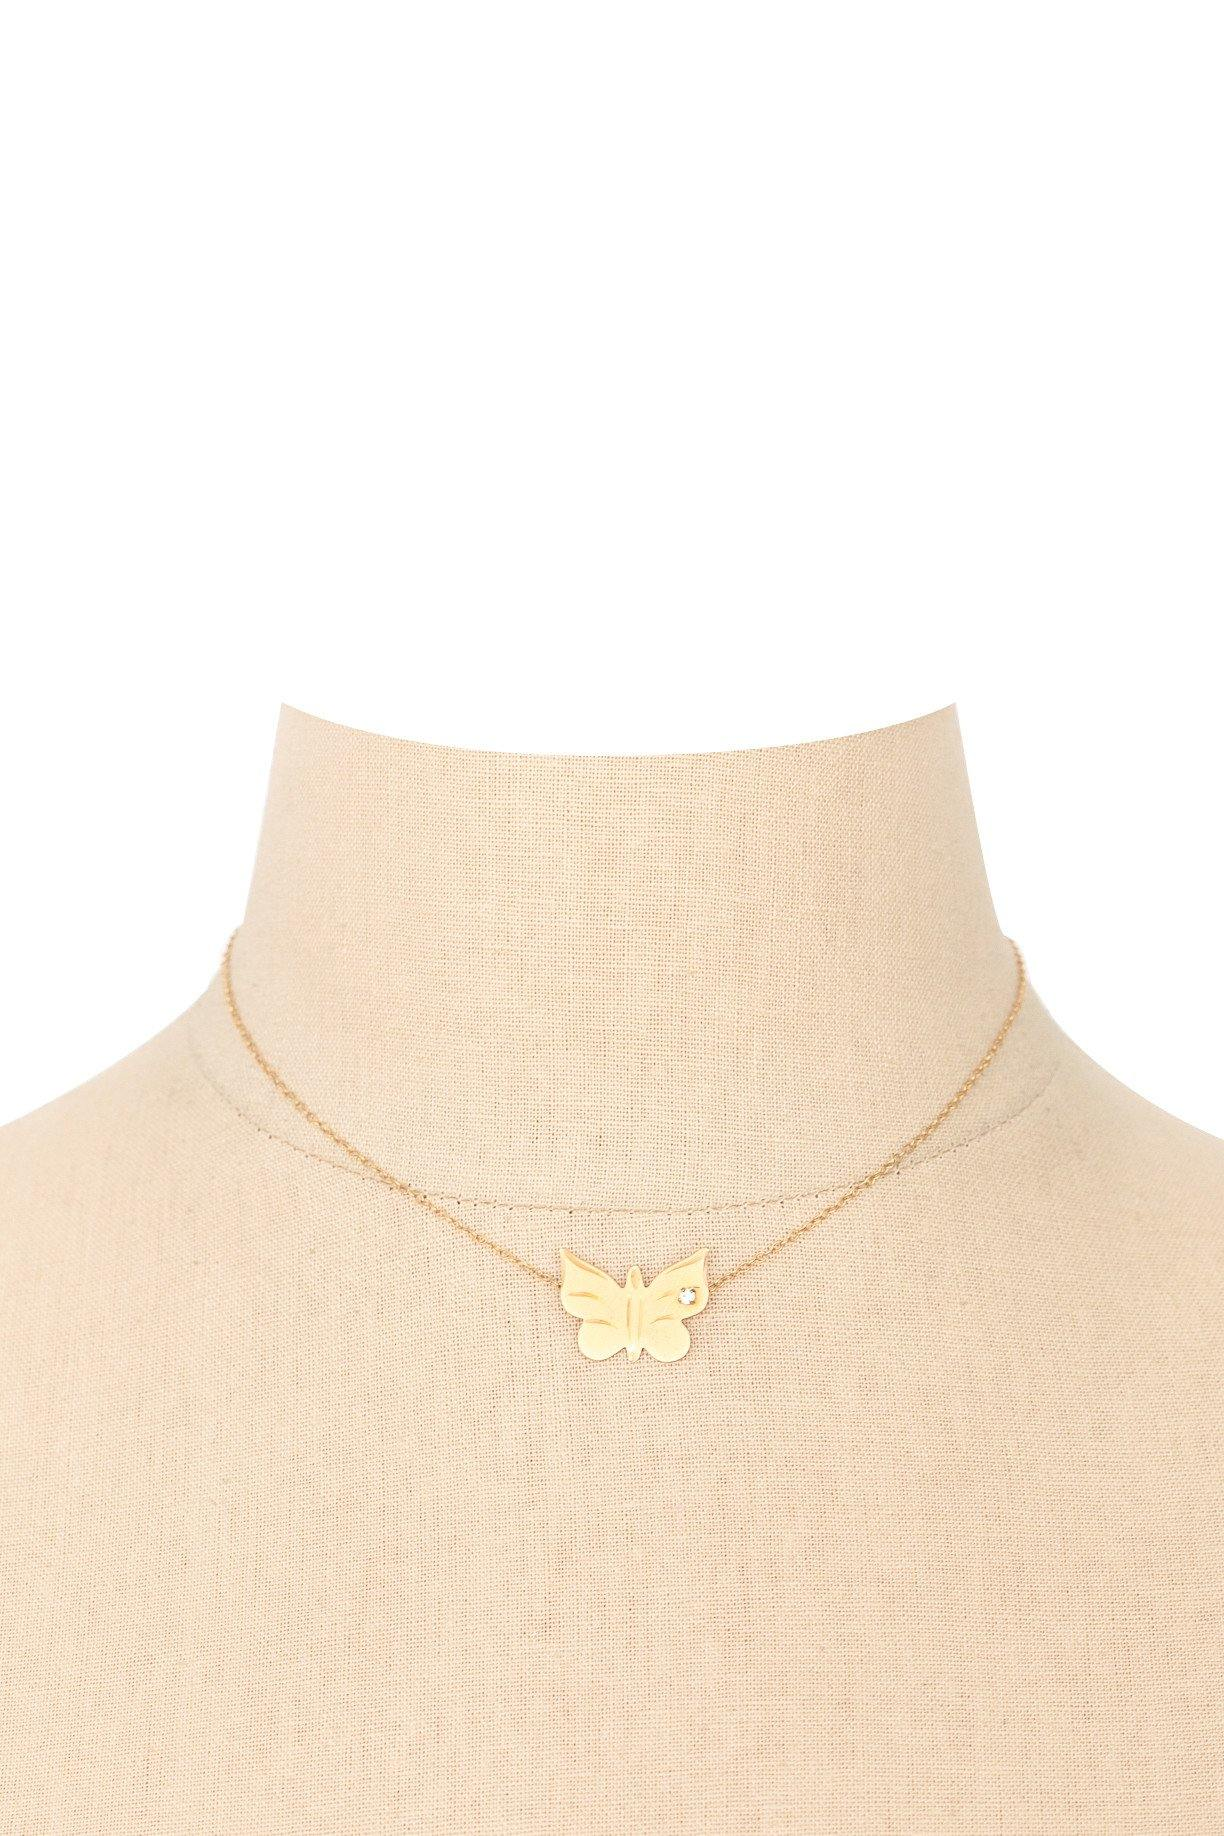 70's__Vintage__14K Gold-Filled Butterfly Pendant Necklace